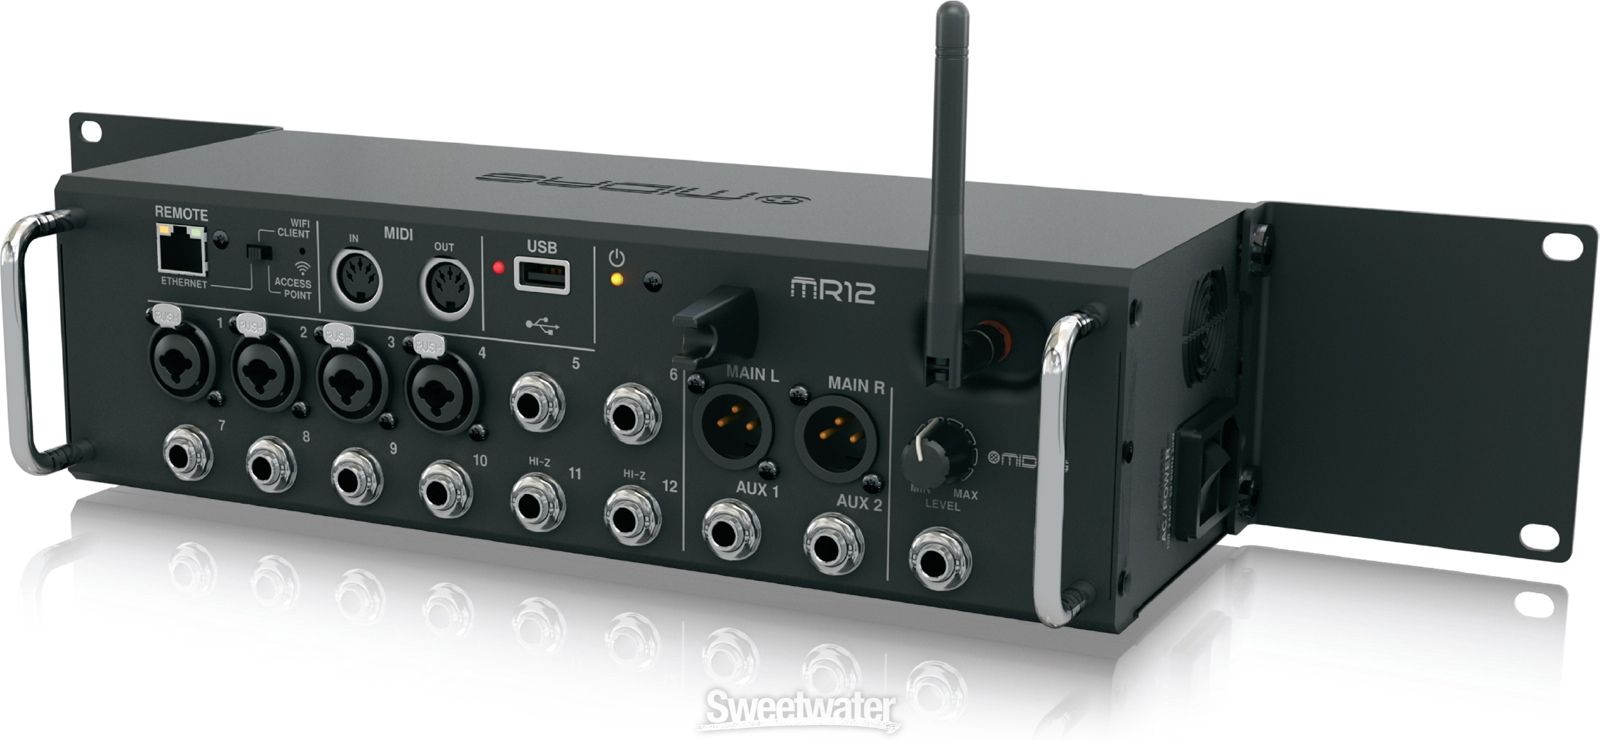 Midas MR12 Tabletcontrolled Digital Mixer Apps for mac